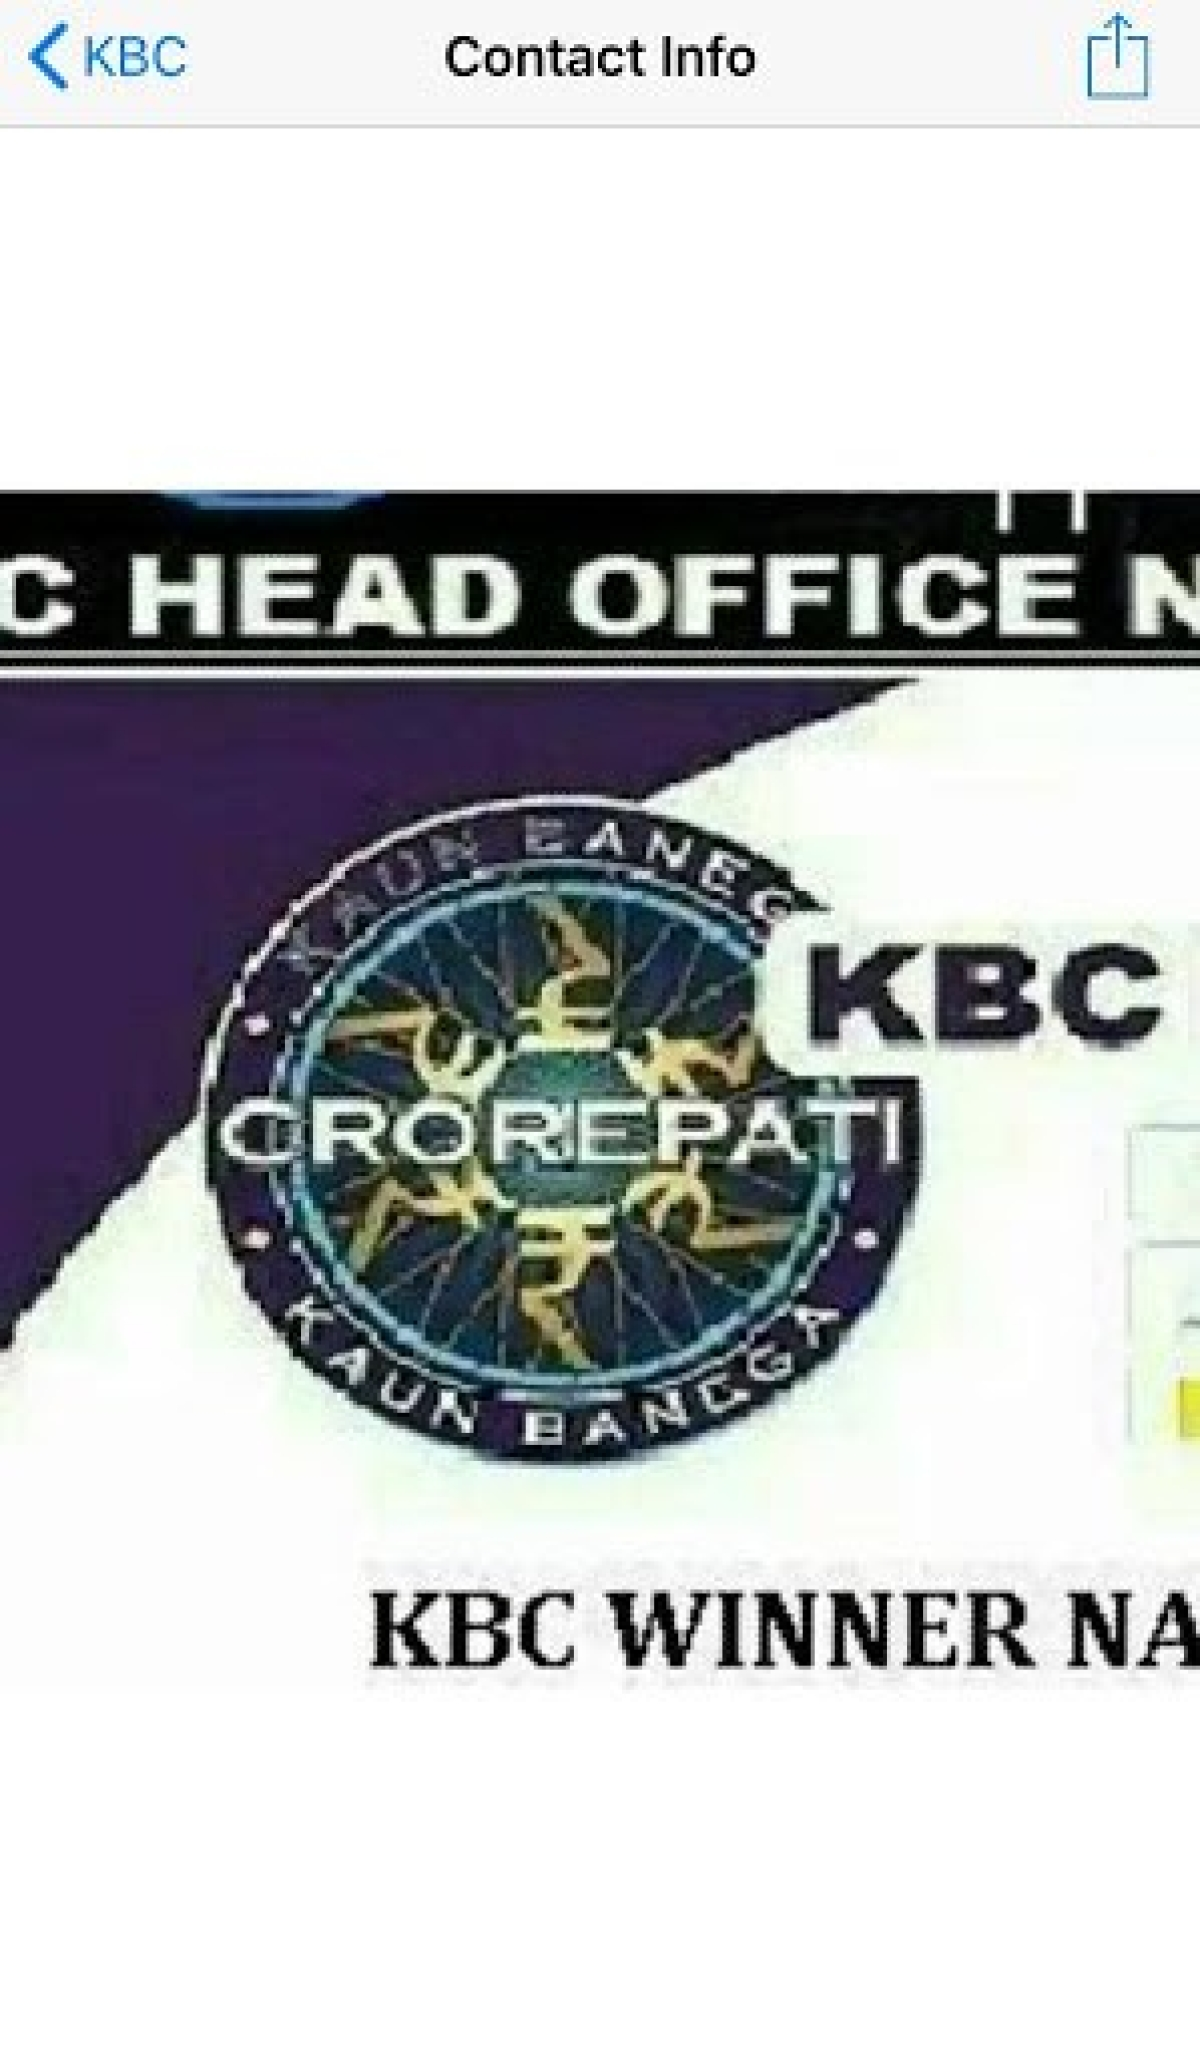 WebQoof: KBC Lottery Message Promising 25 Lakh is Fake